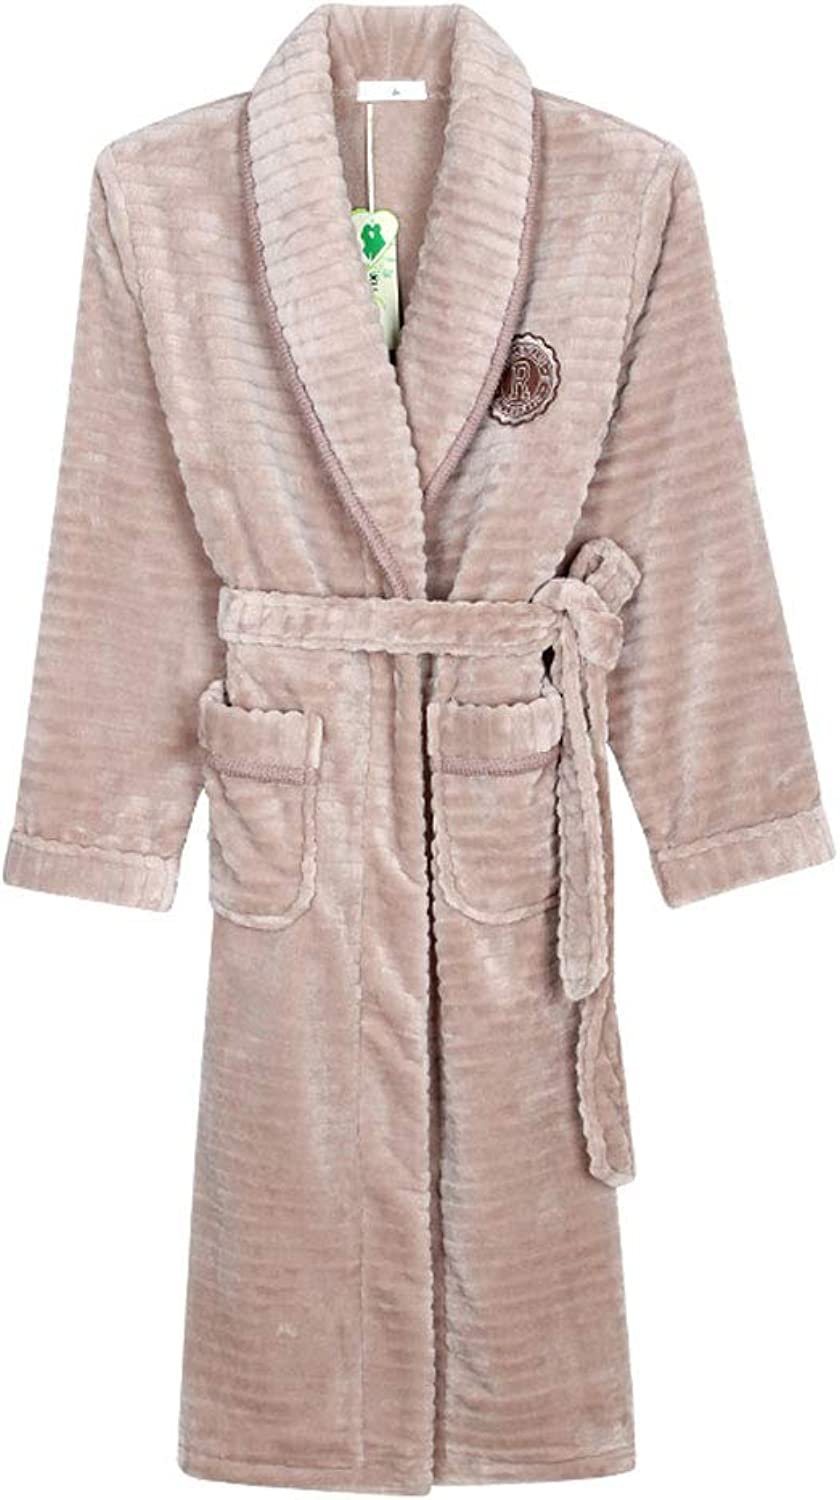 Bathrobe Terry,Medium and Long Section, Thick Coral Fleece to Keep Warm, Home Bathrobe Sweet Couple (color   B, Size   M)